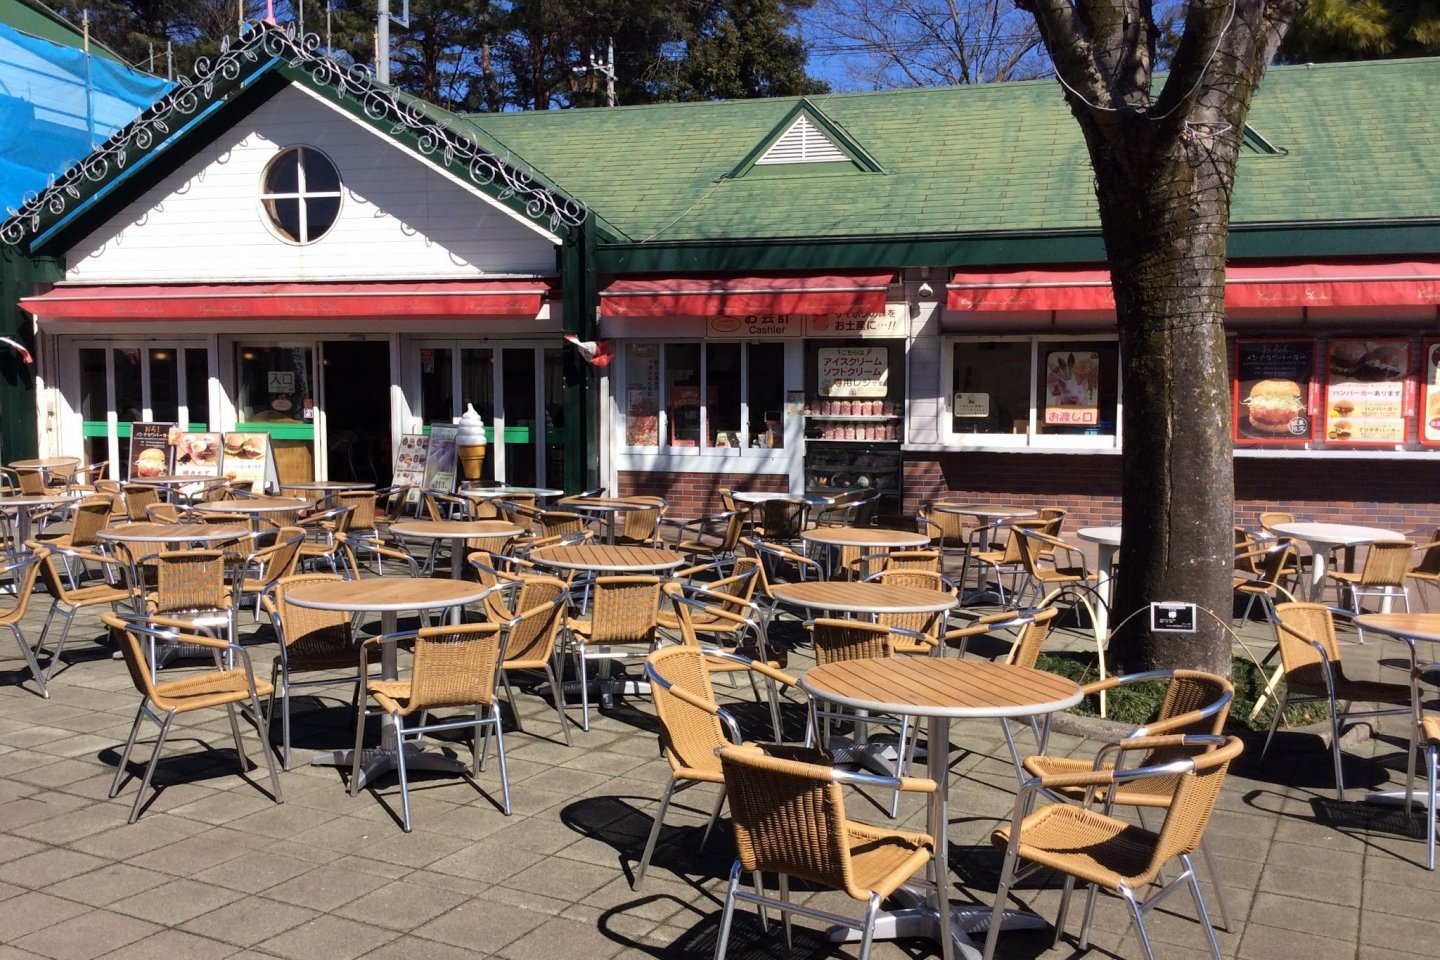 Seating outside the cafe in Saiboku